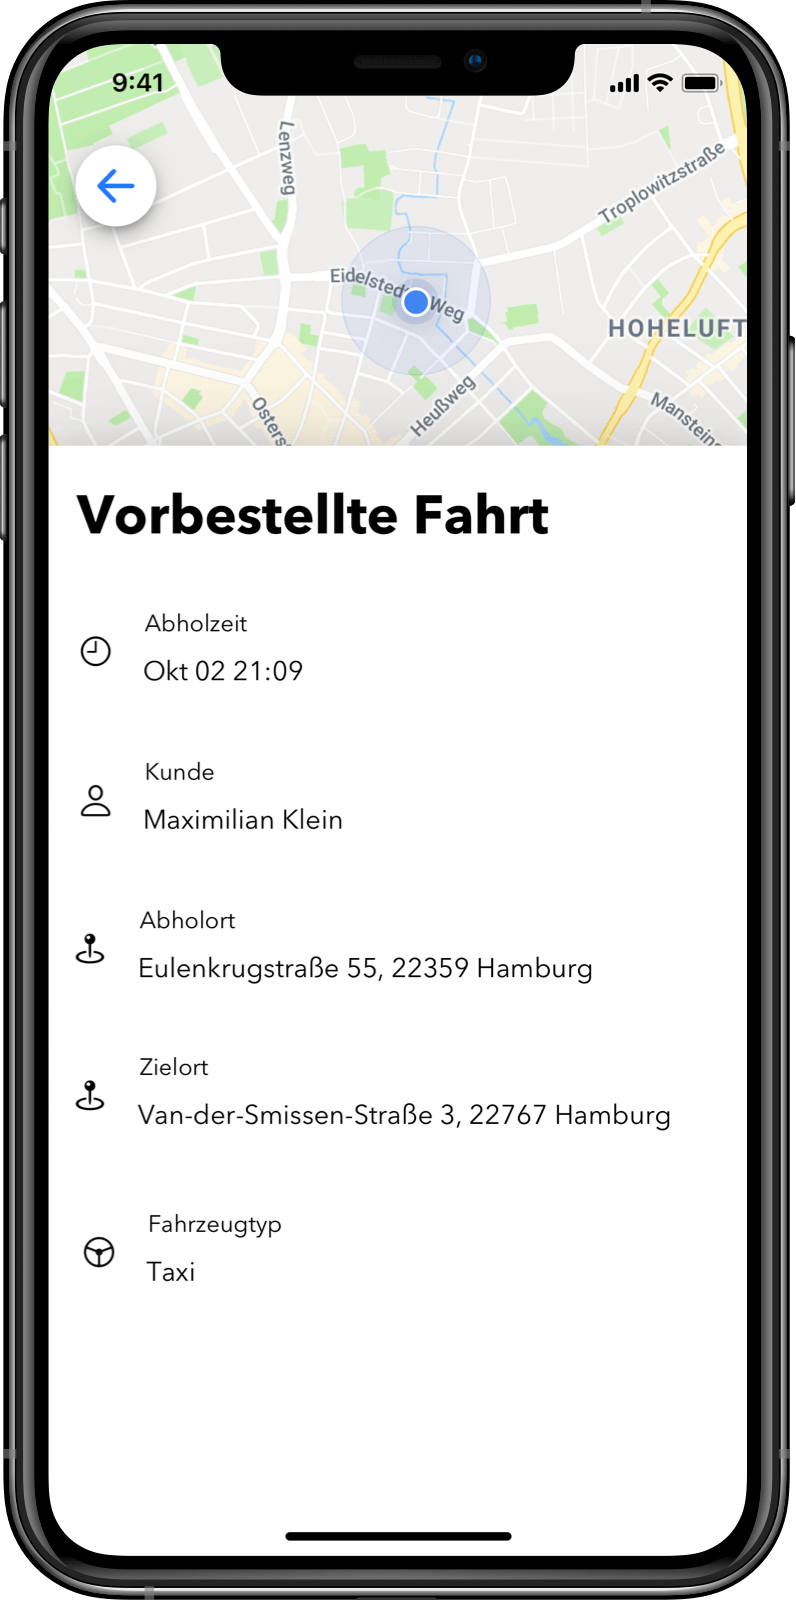 Driver App: See all scheduled bookings